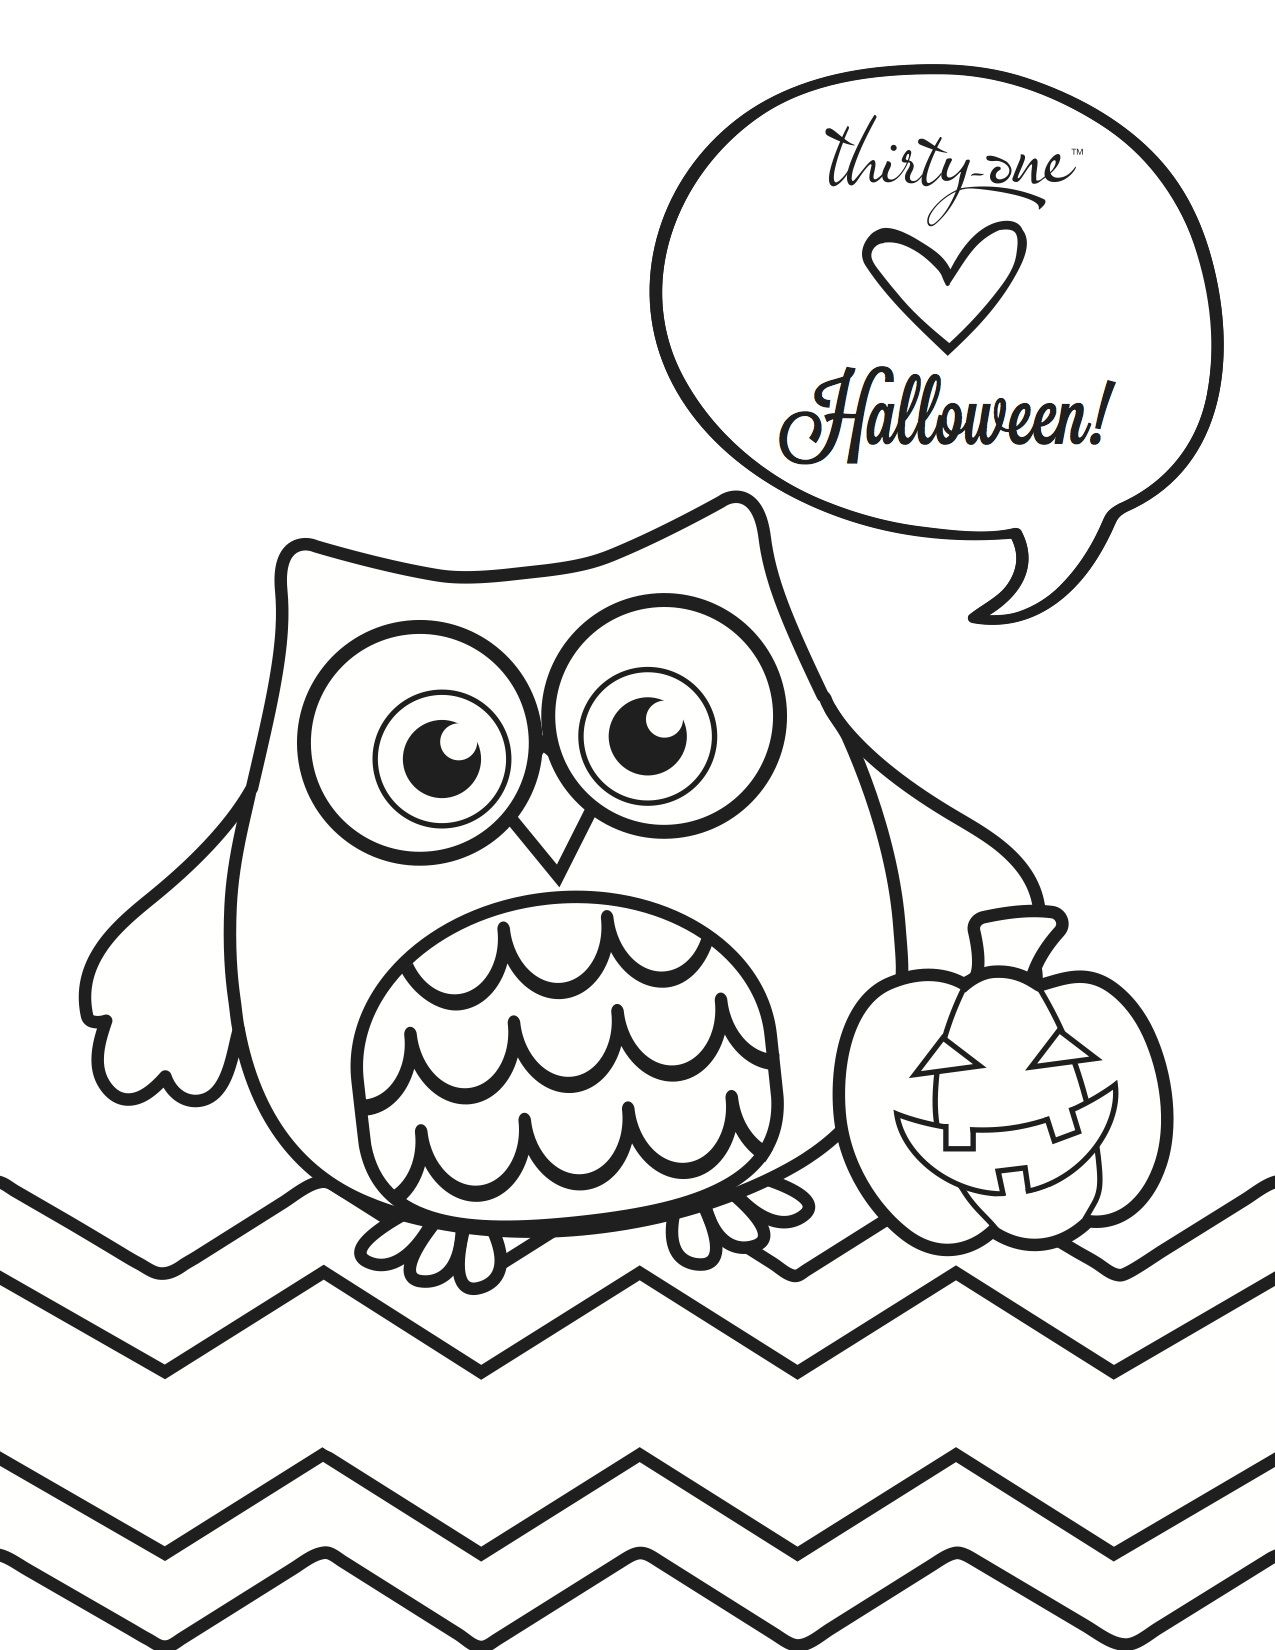 Owl-loween Coloring Page! Thirty One Gifts! Join my FB. group,a ...